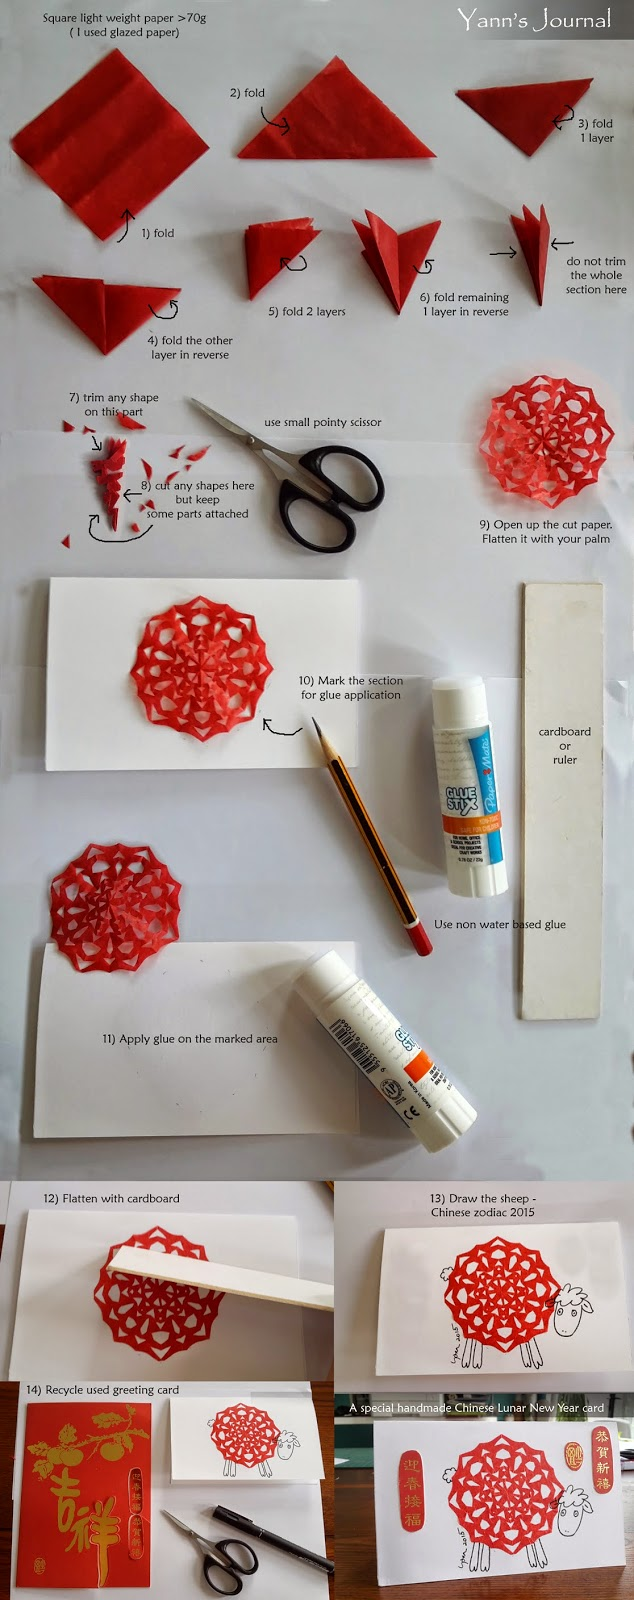 Chinese Lunar New Year Greeting Card With Paper Cutting Yanns